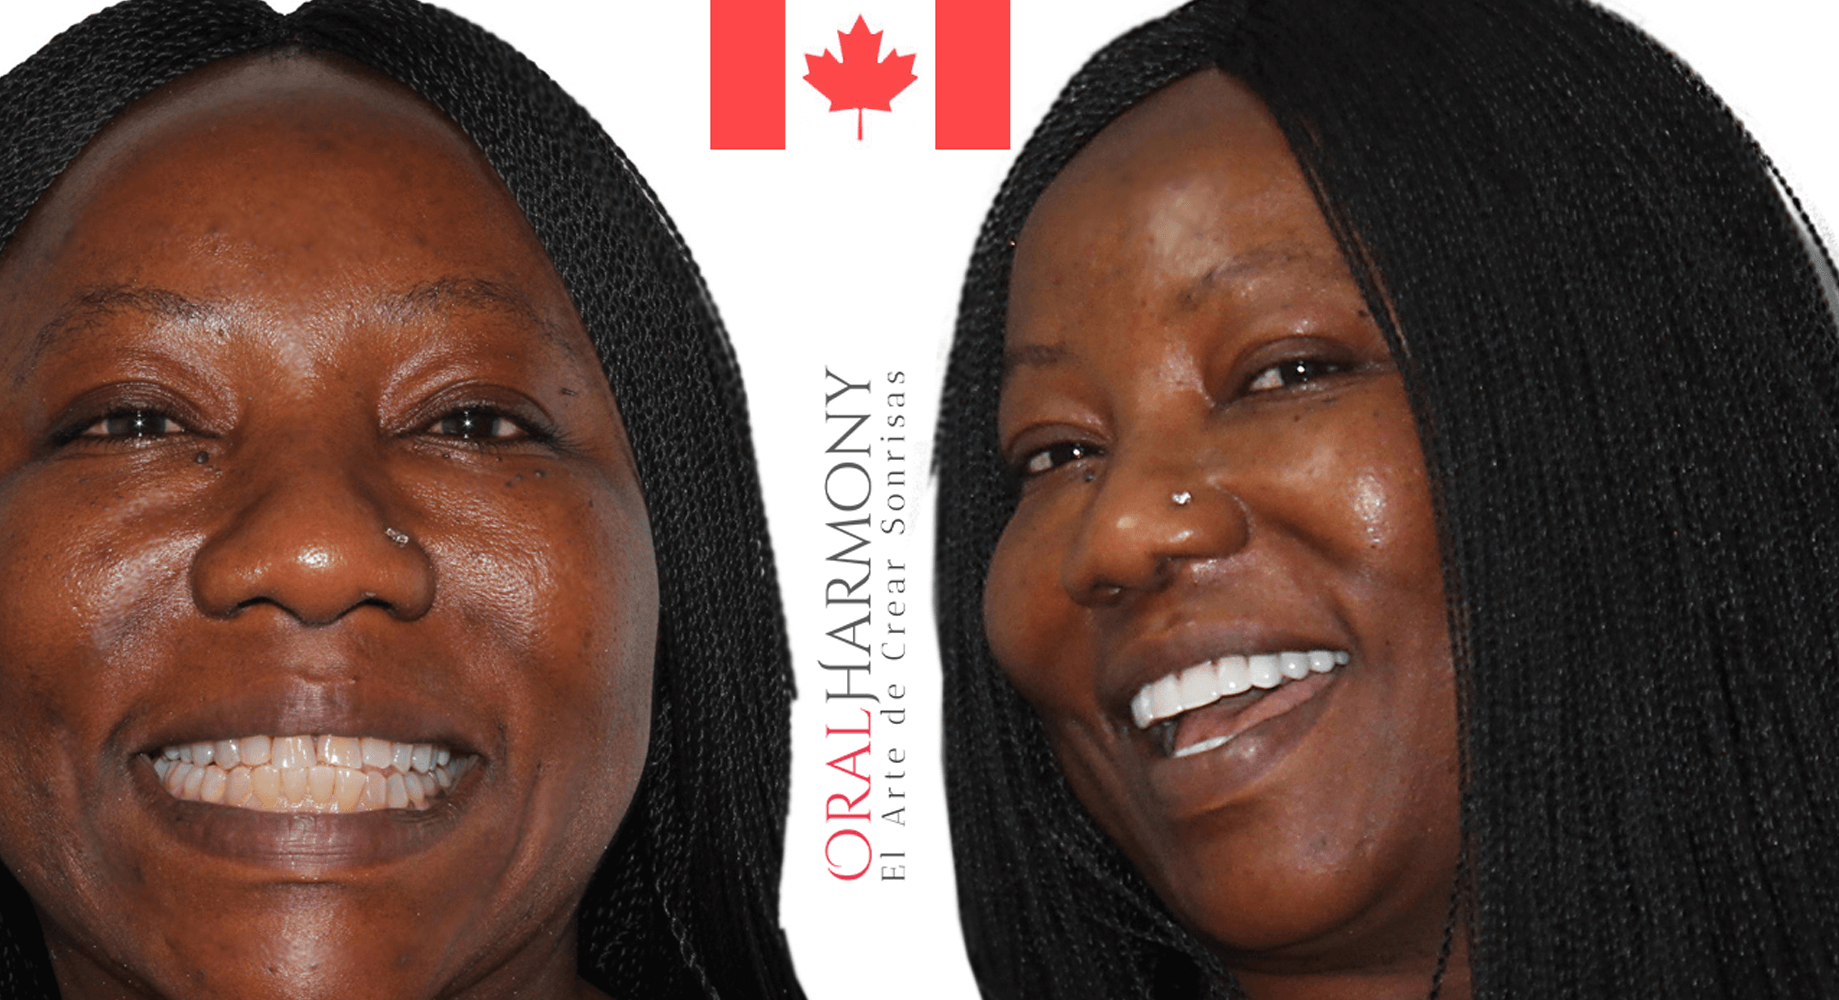 Oral Harmony Smile Makeover - Canada